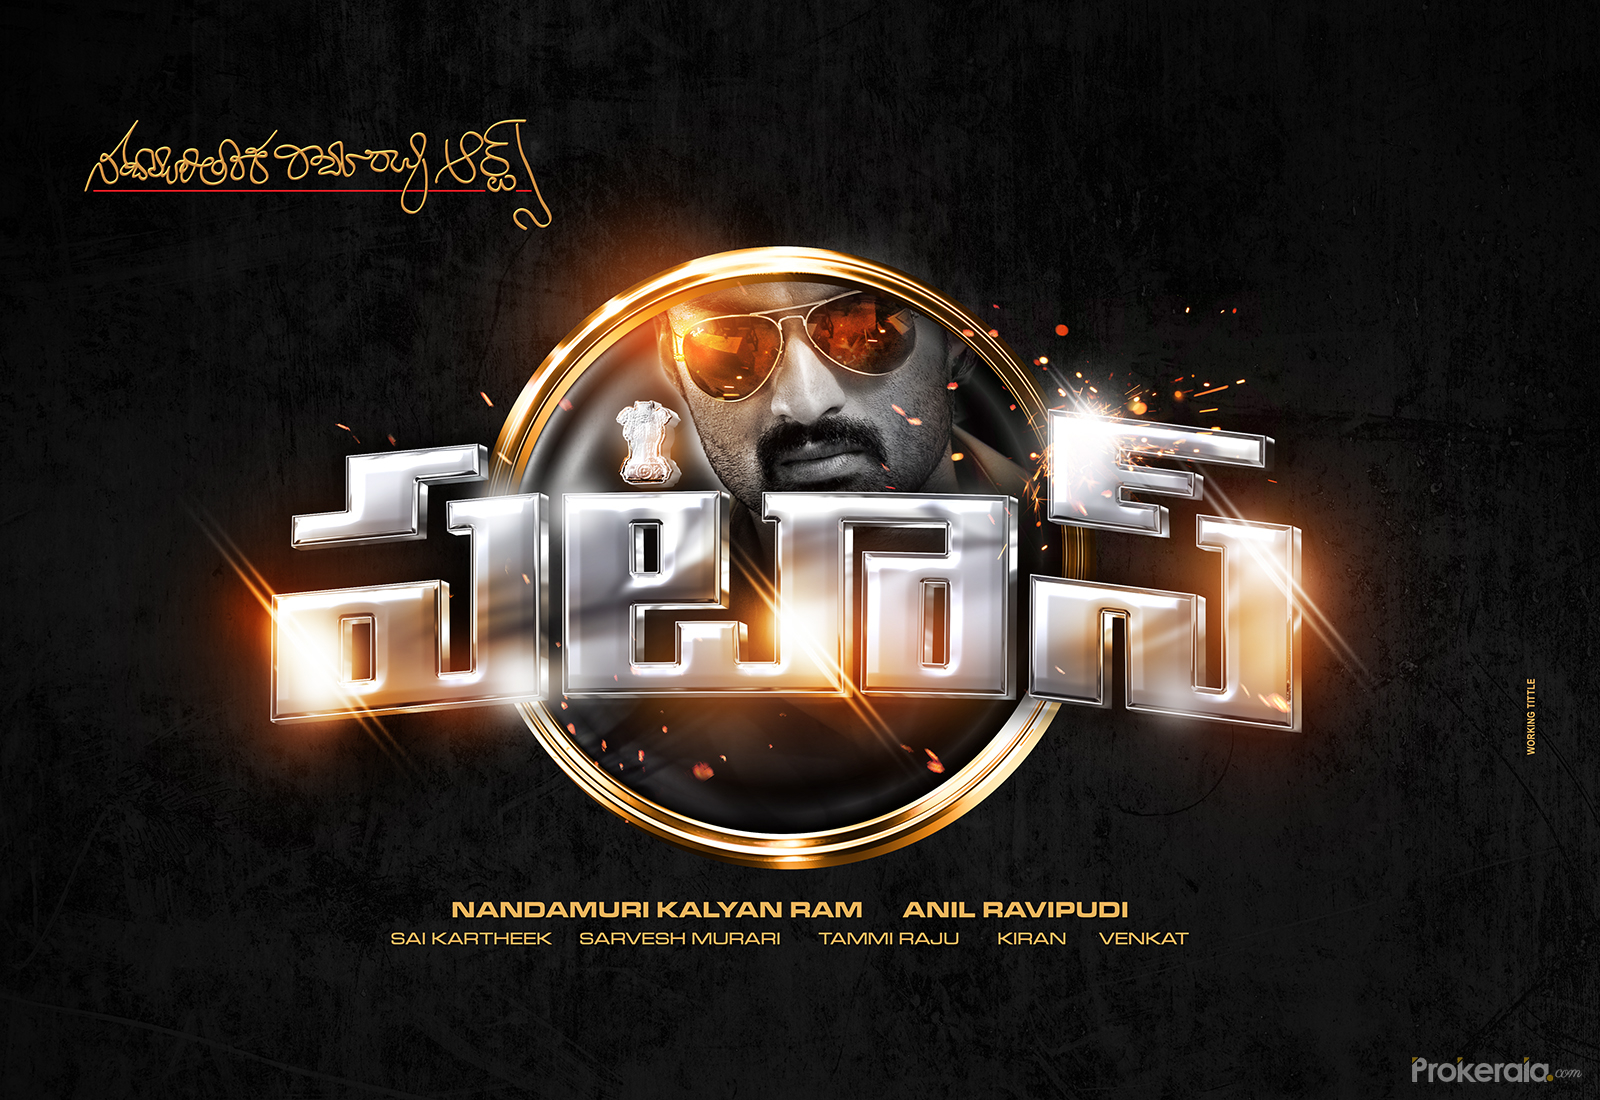 Good Wallpaper Logo Raju - patas-movie-logo-wallpaper-34440  Gallery_515443.jpg